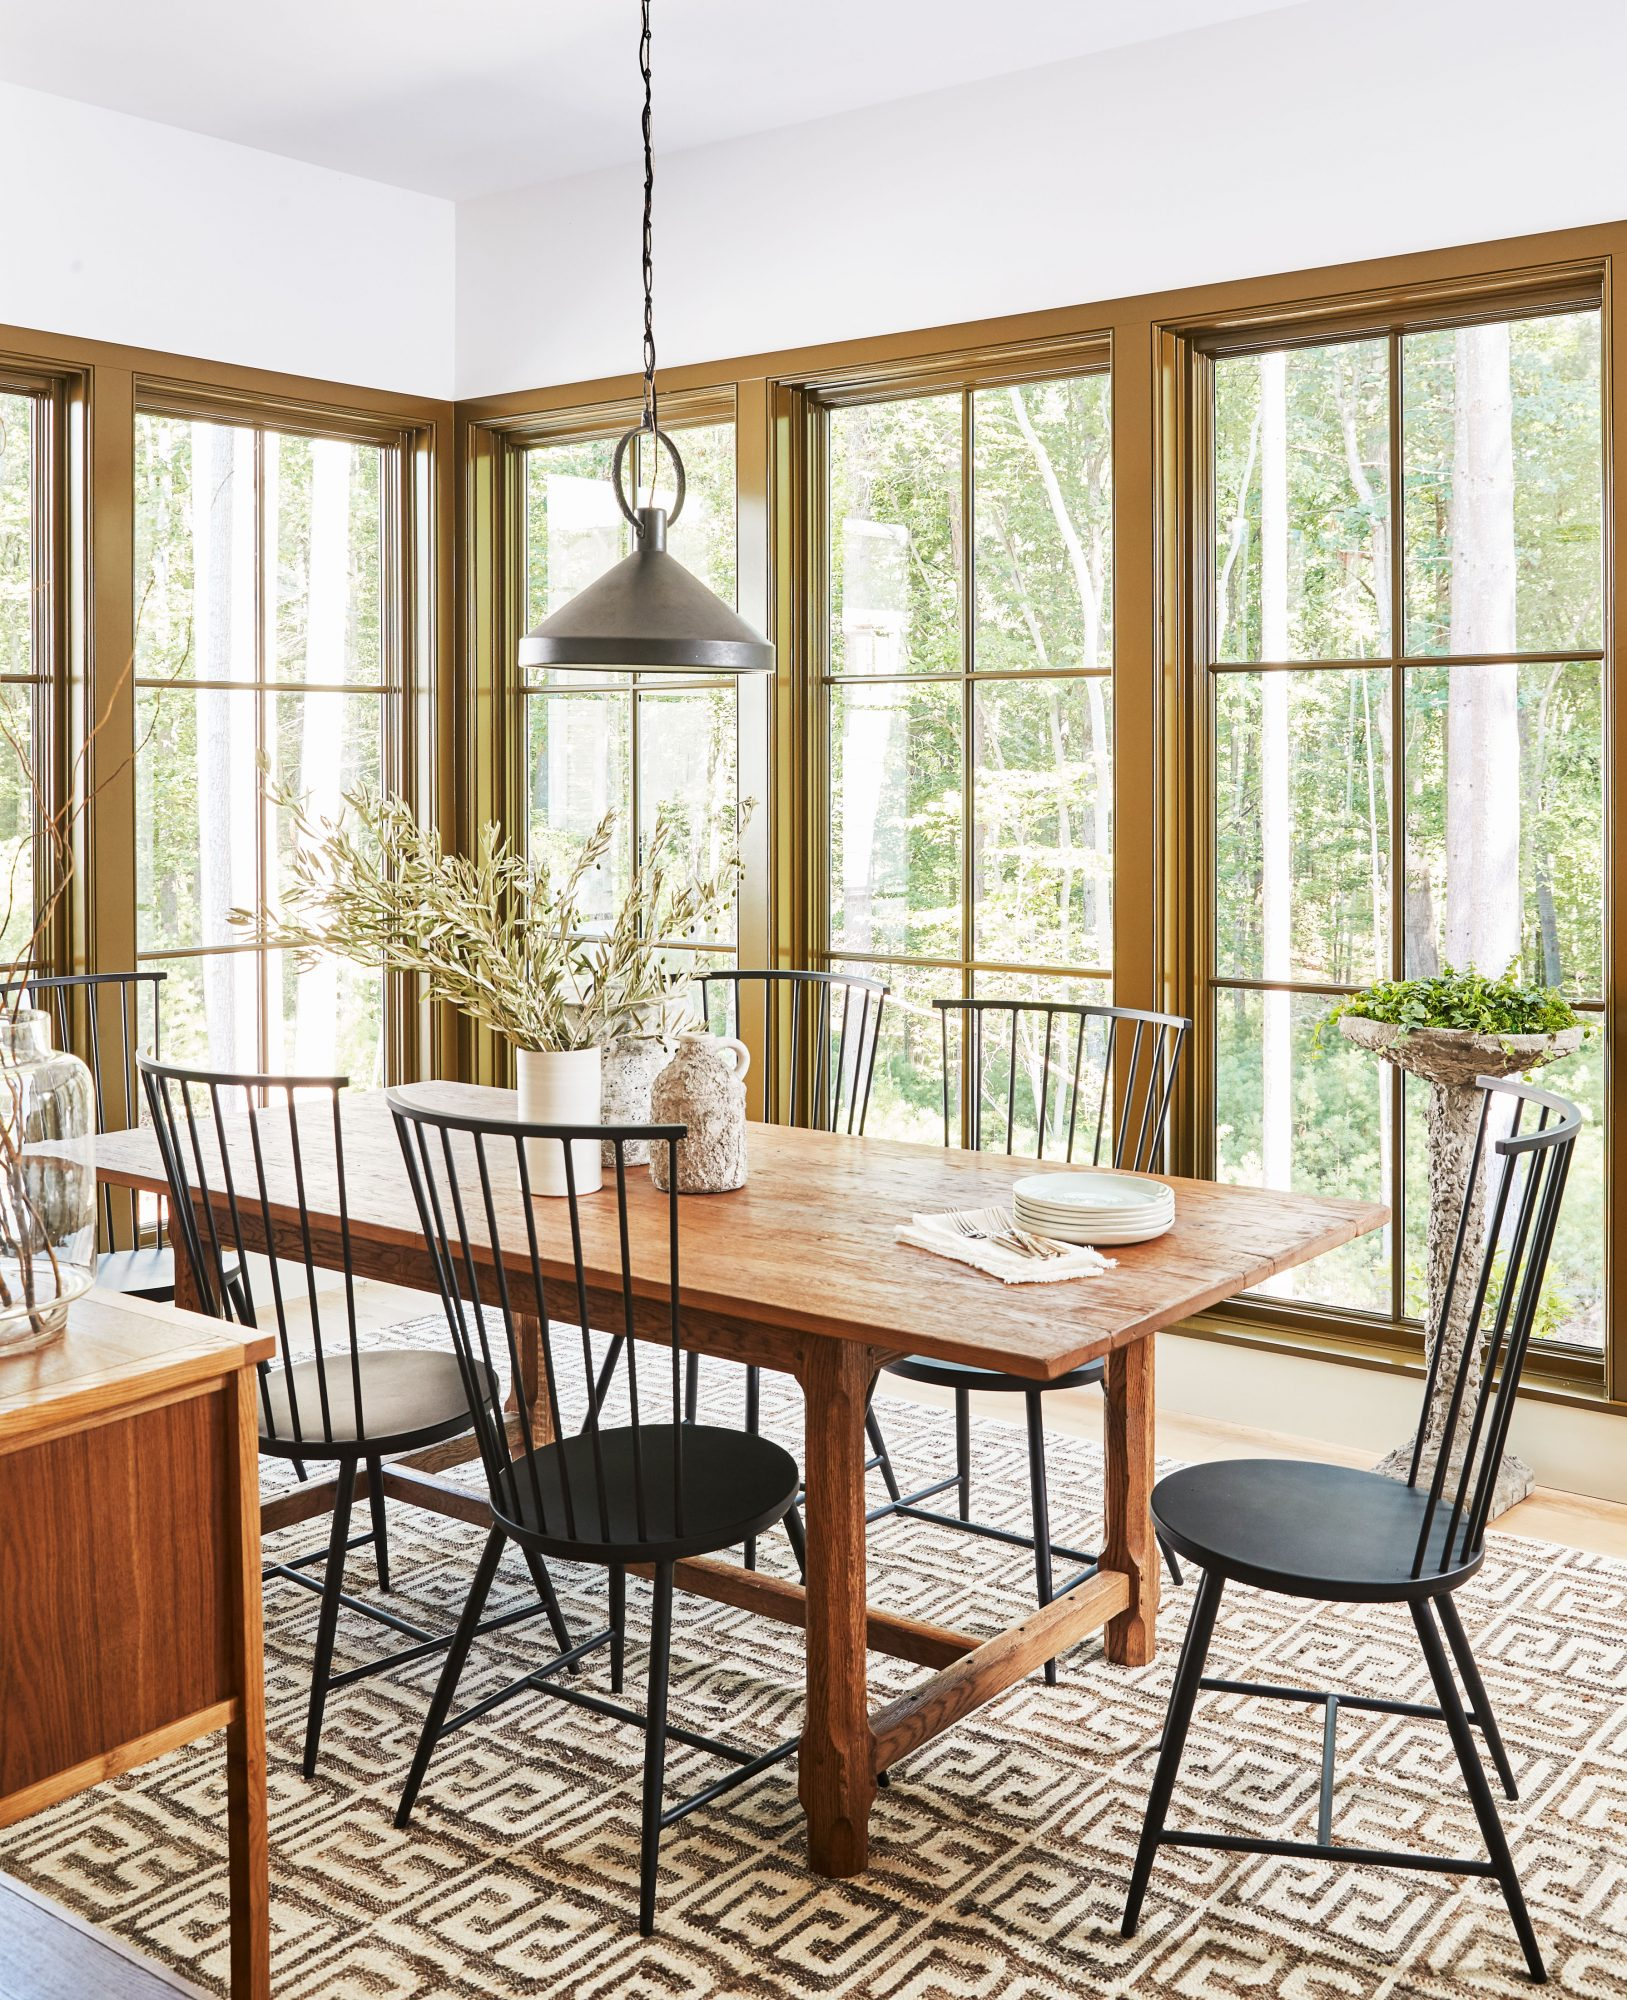 Idea House 2020 Dining Room with White Walls, Wood Dining Table, and Metal Chairs